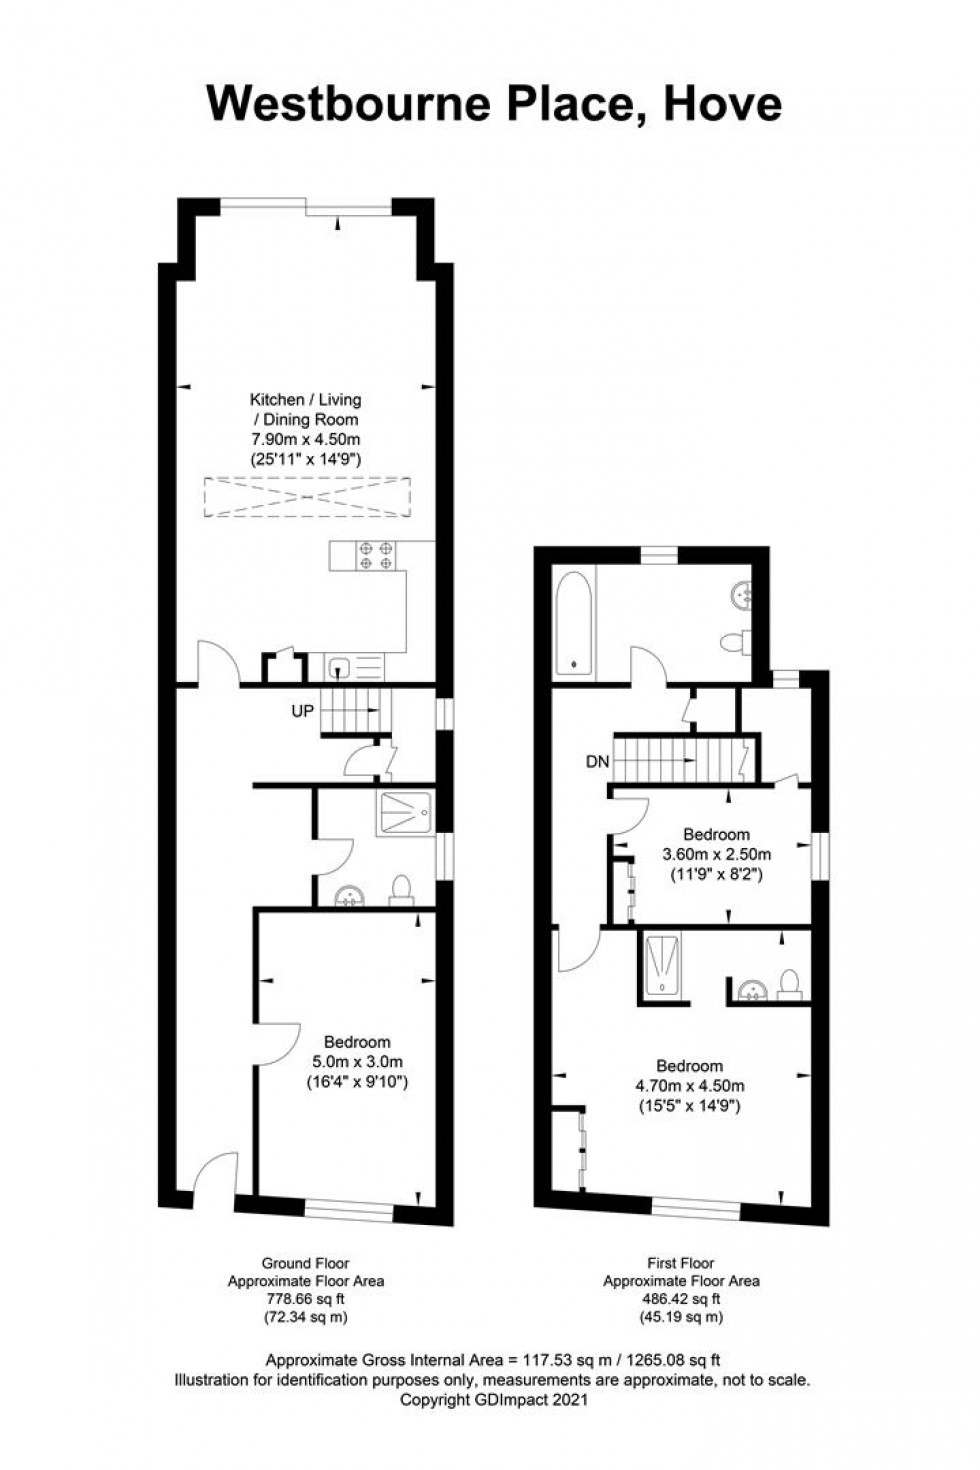 Floorplan for Westbourne Place, Hove